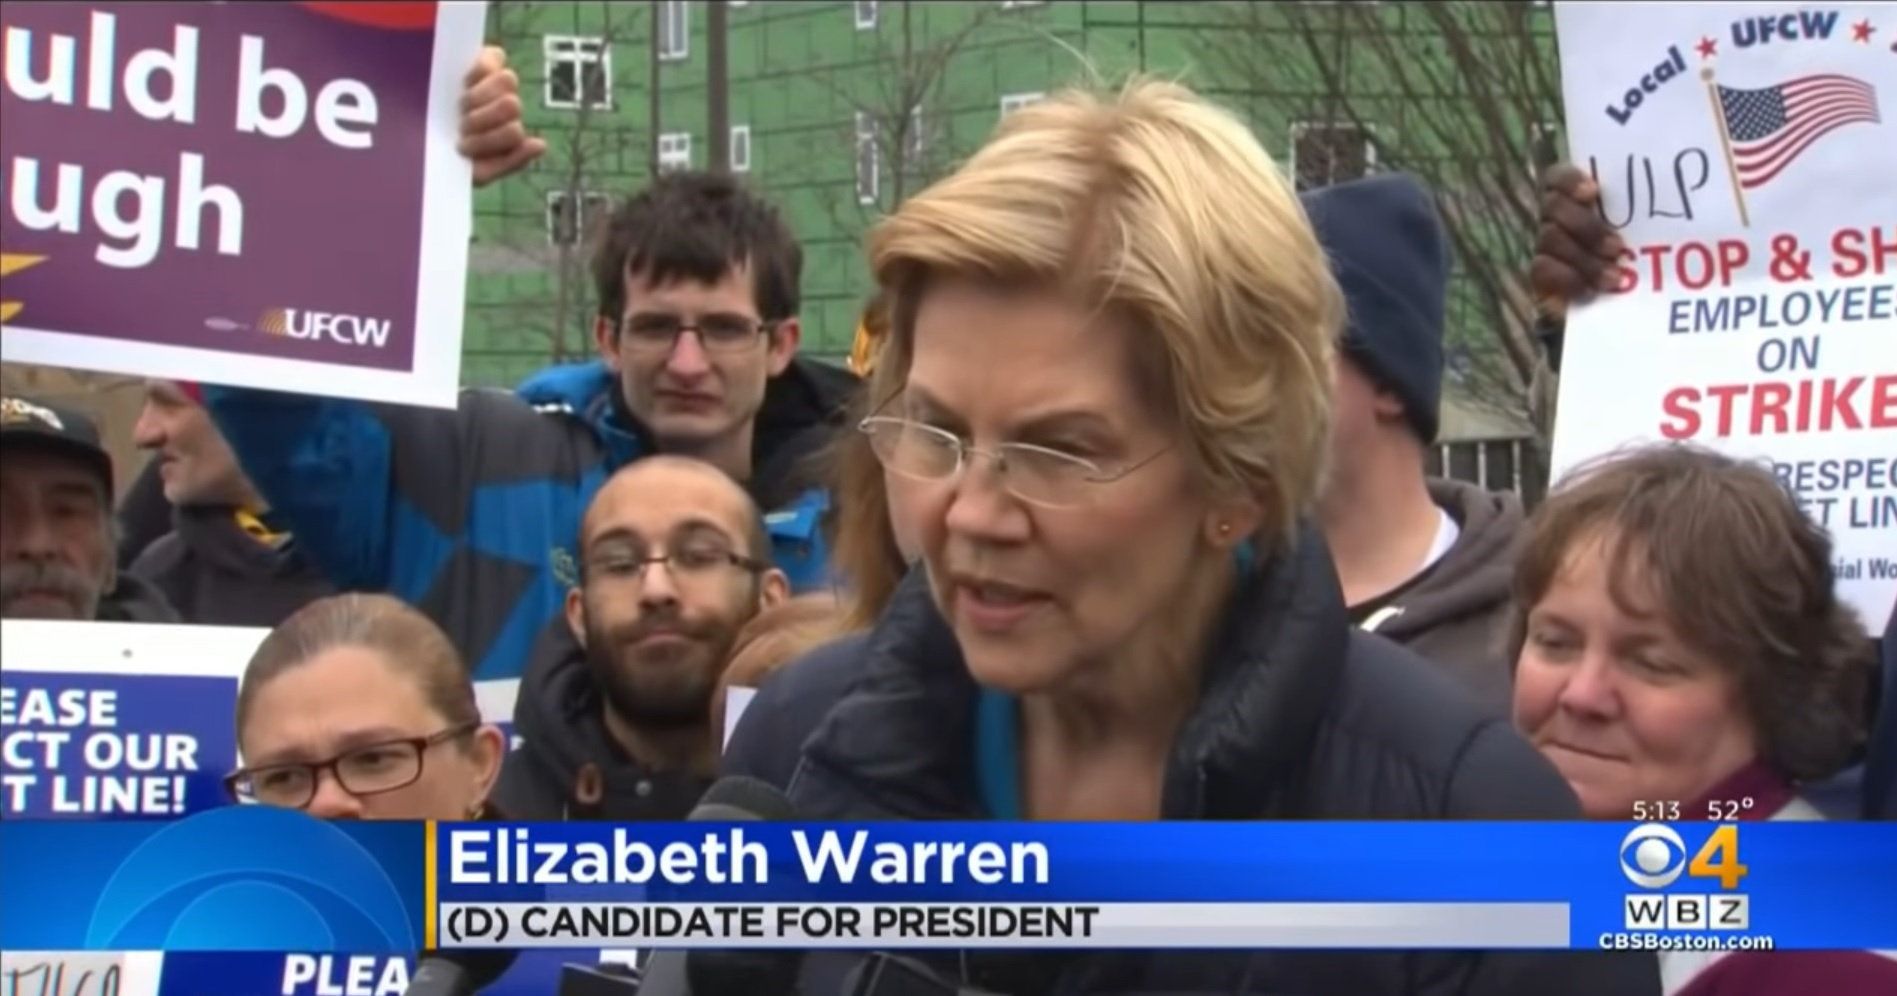 Democrat presidential candidate Elizabeth Warren, seen here on the UFCW picket lines in April, sided with the union bosses who violated workers' rights in an effort to secure their forced-dues-backed support in her campaign